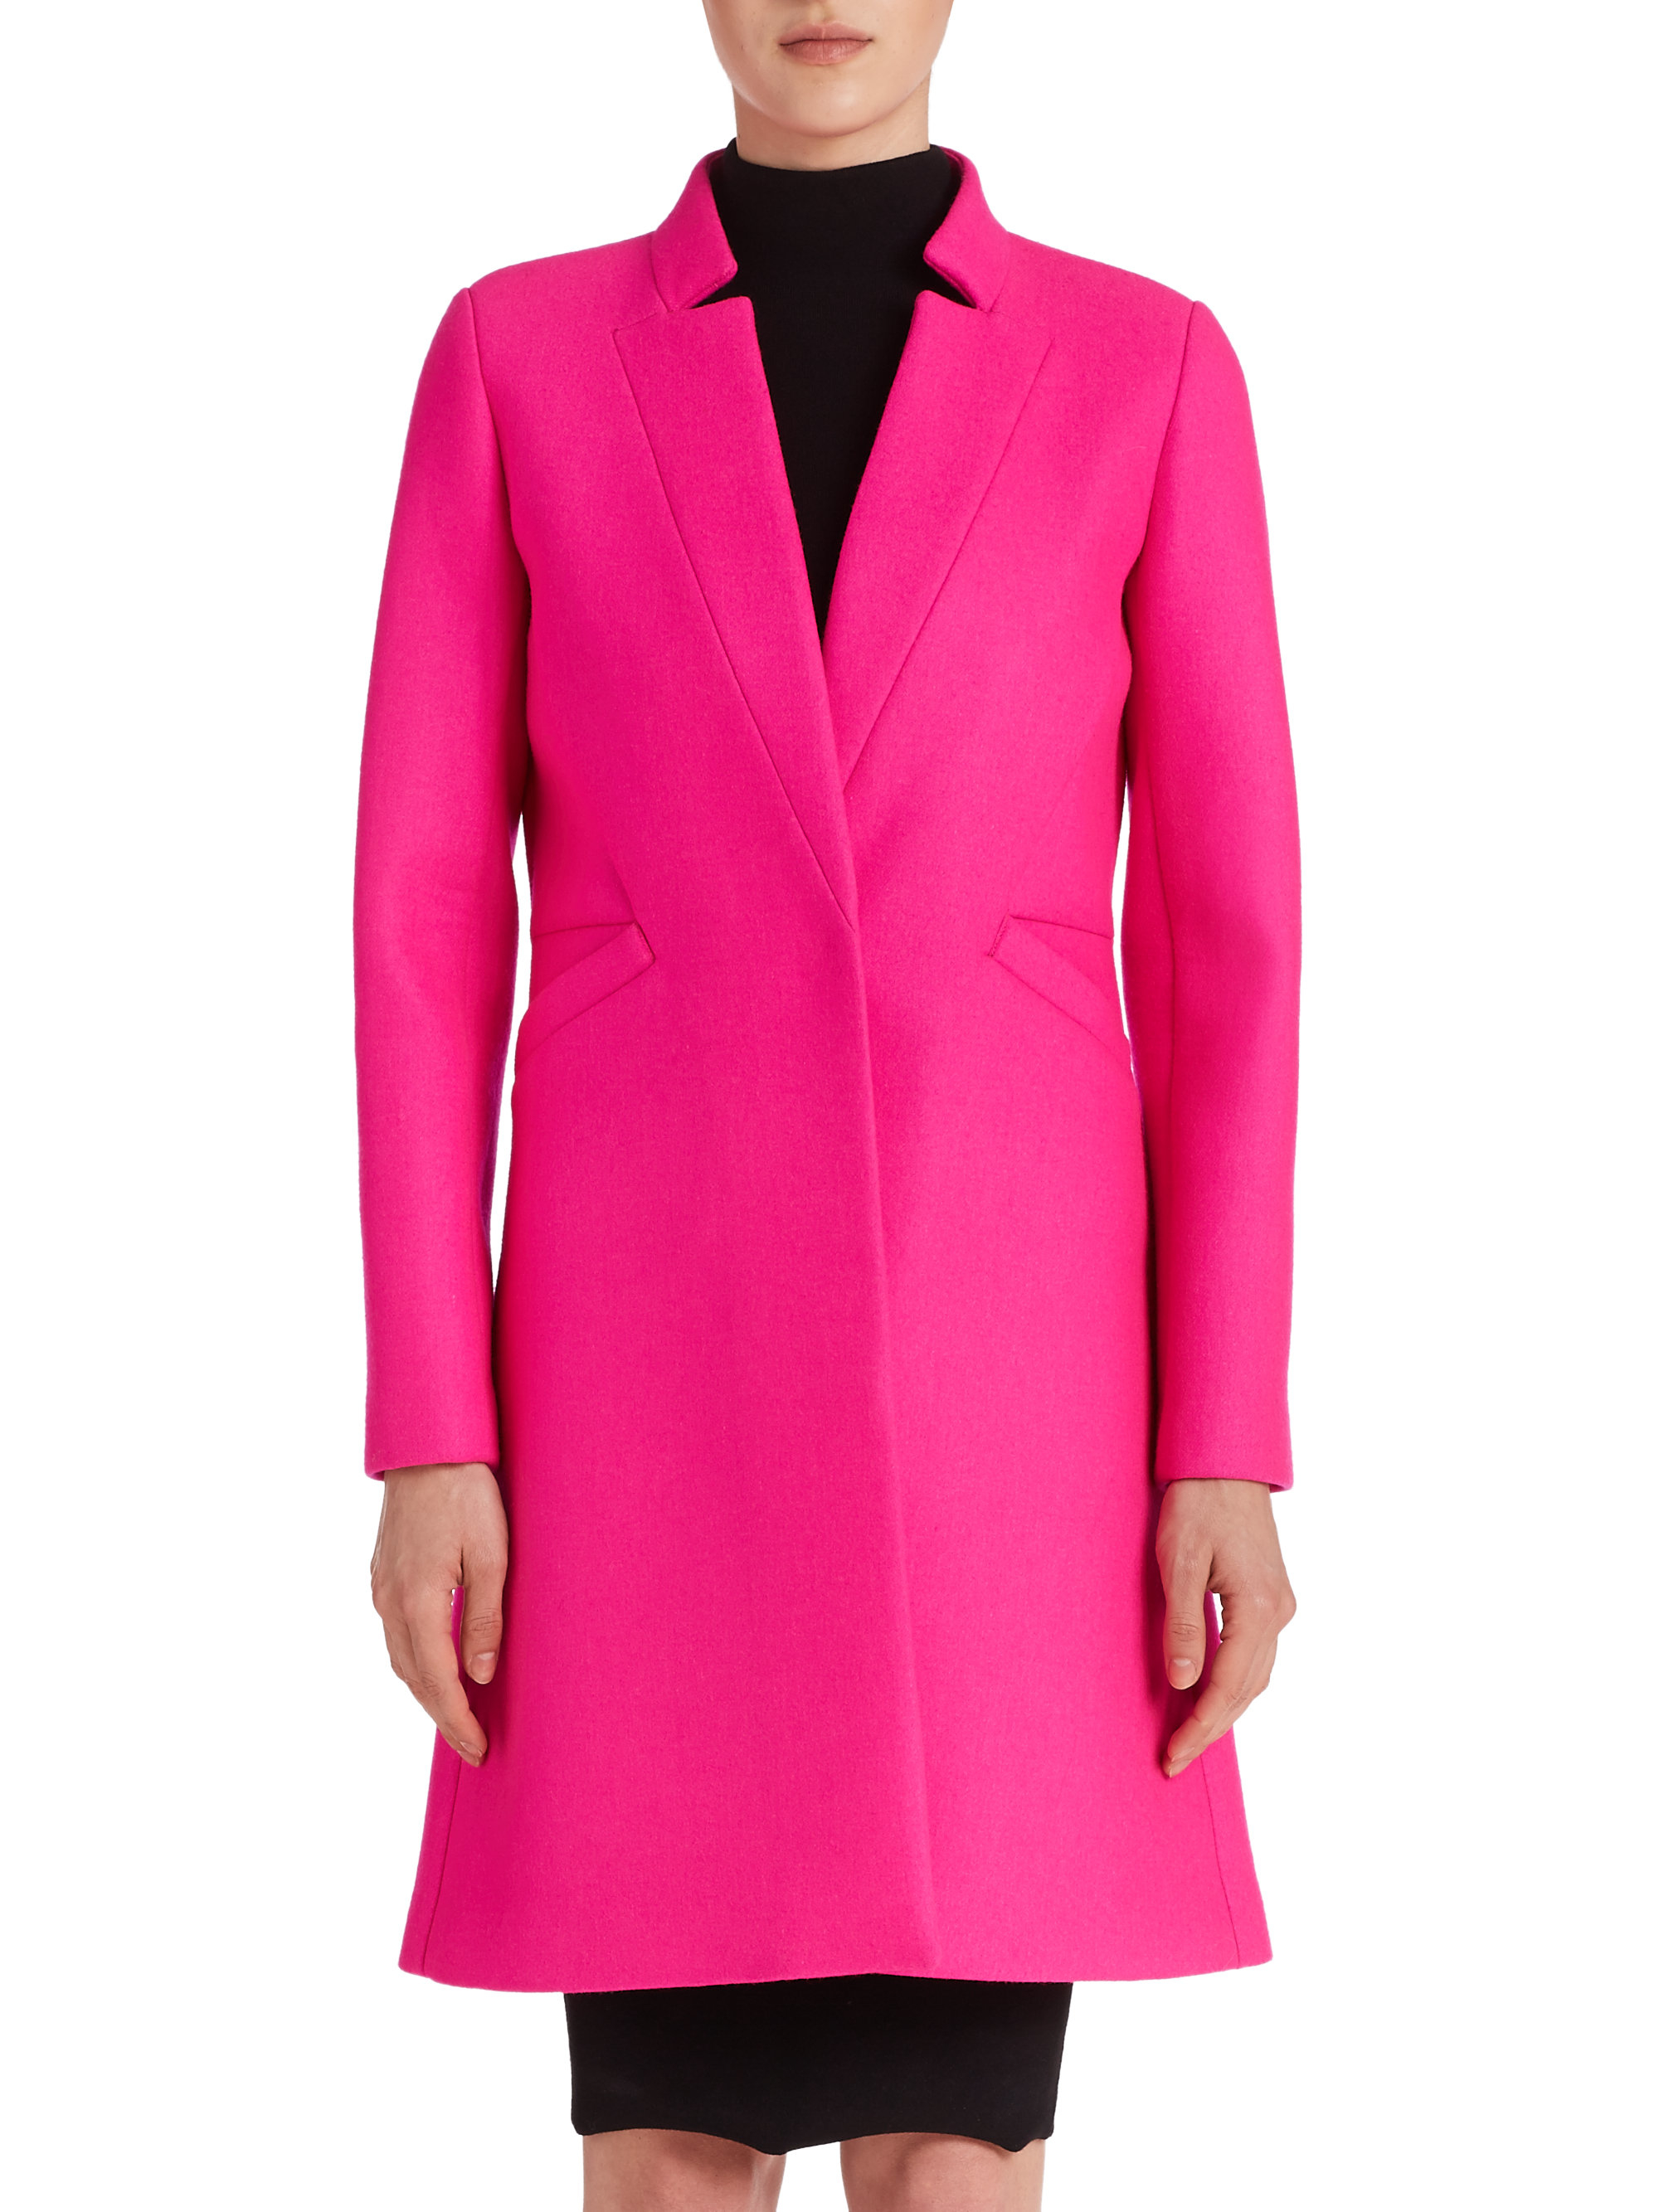 Milly Tailored Slim Coat in Pink | Lyst